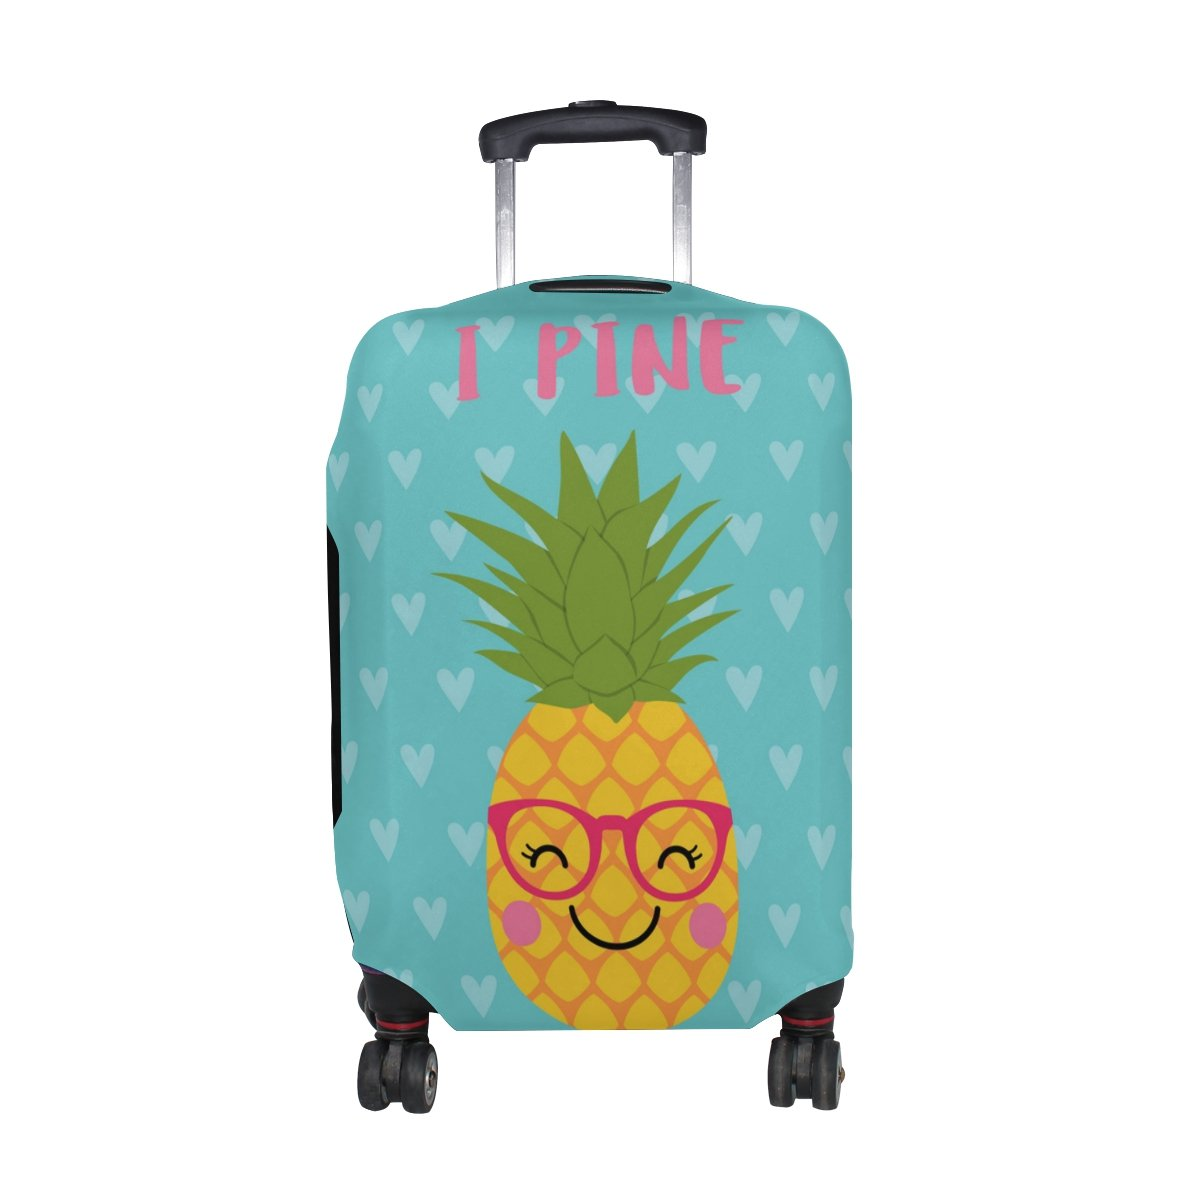 U LIFE Vintage Tropical Plants Love Heart Luggage Suitcase Cover Protector